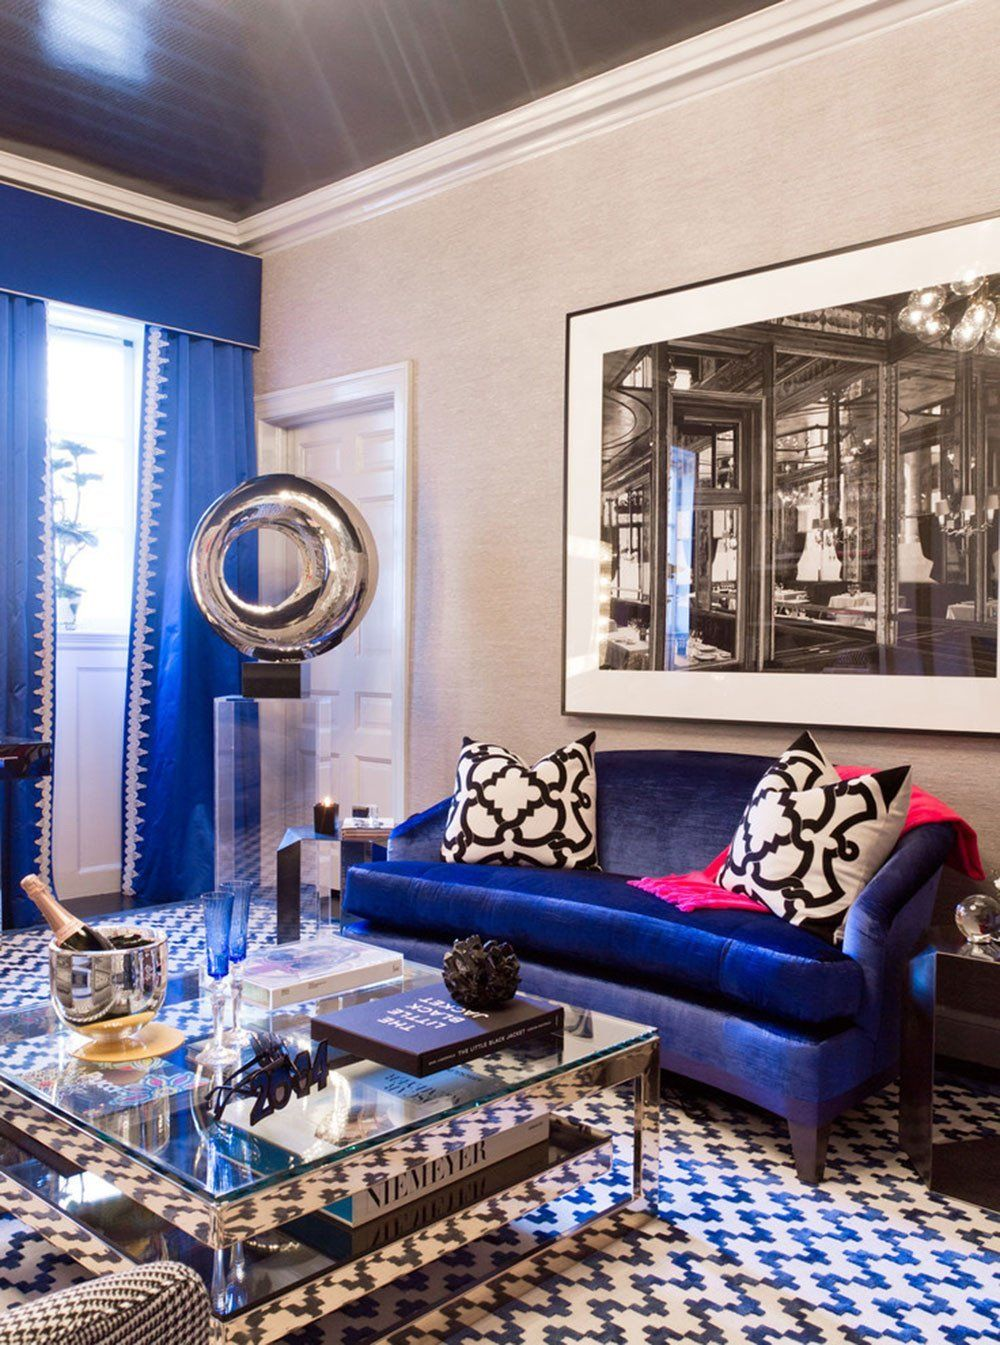 Pin On Living Room Blue Image Ideas #royal #blue #living #room #decorating #ideas